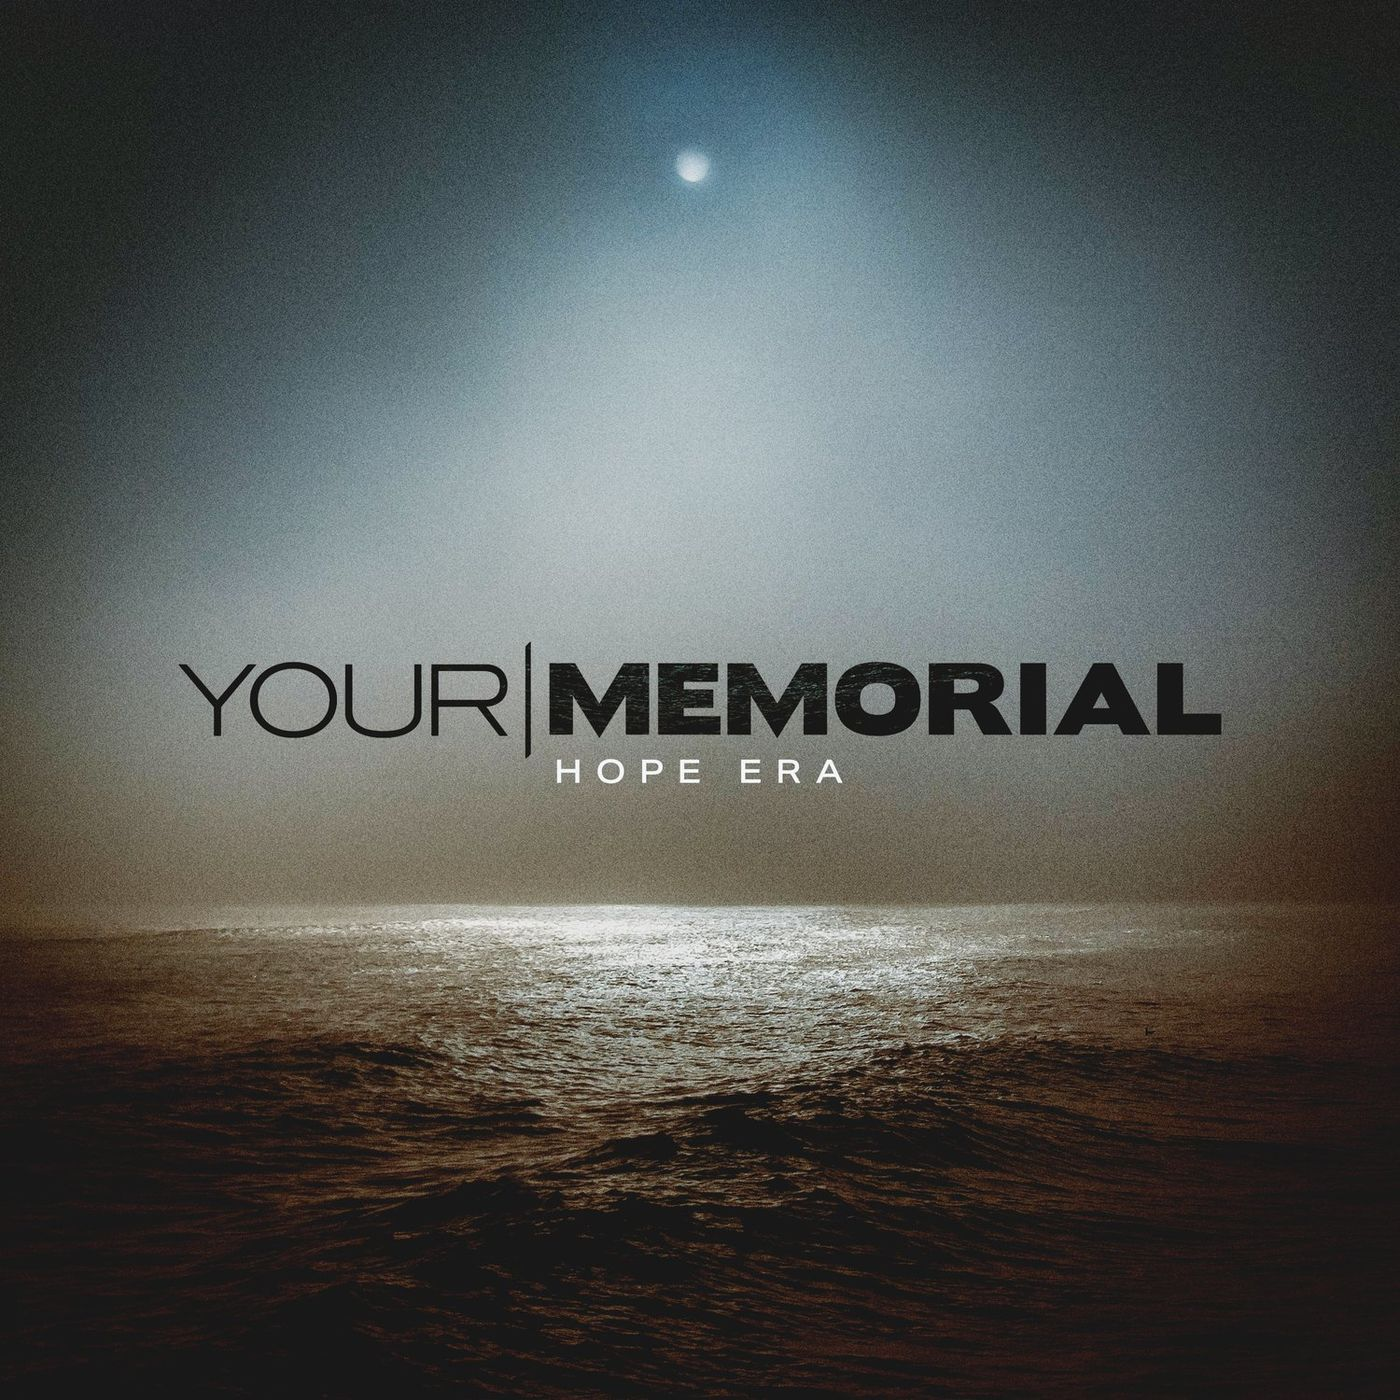 Your Memorial - Hope Era (2020 Remix) [single] (2020)